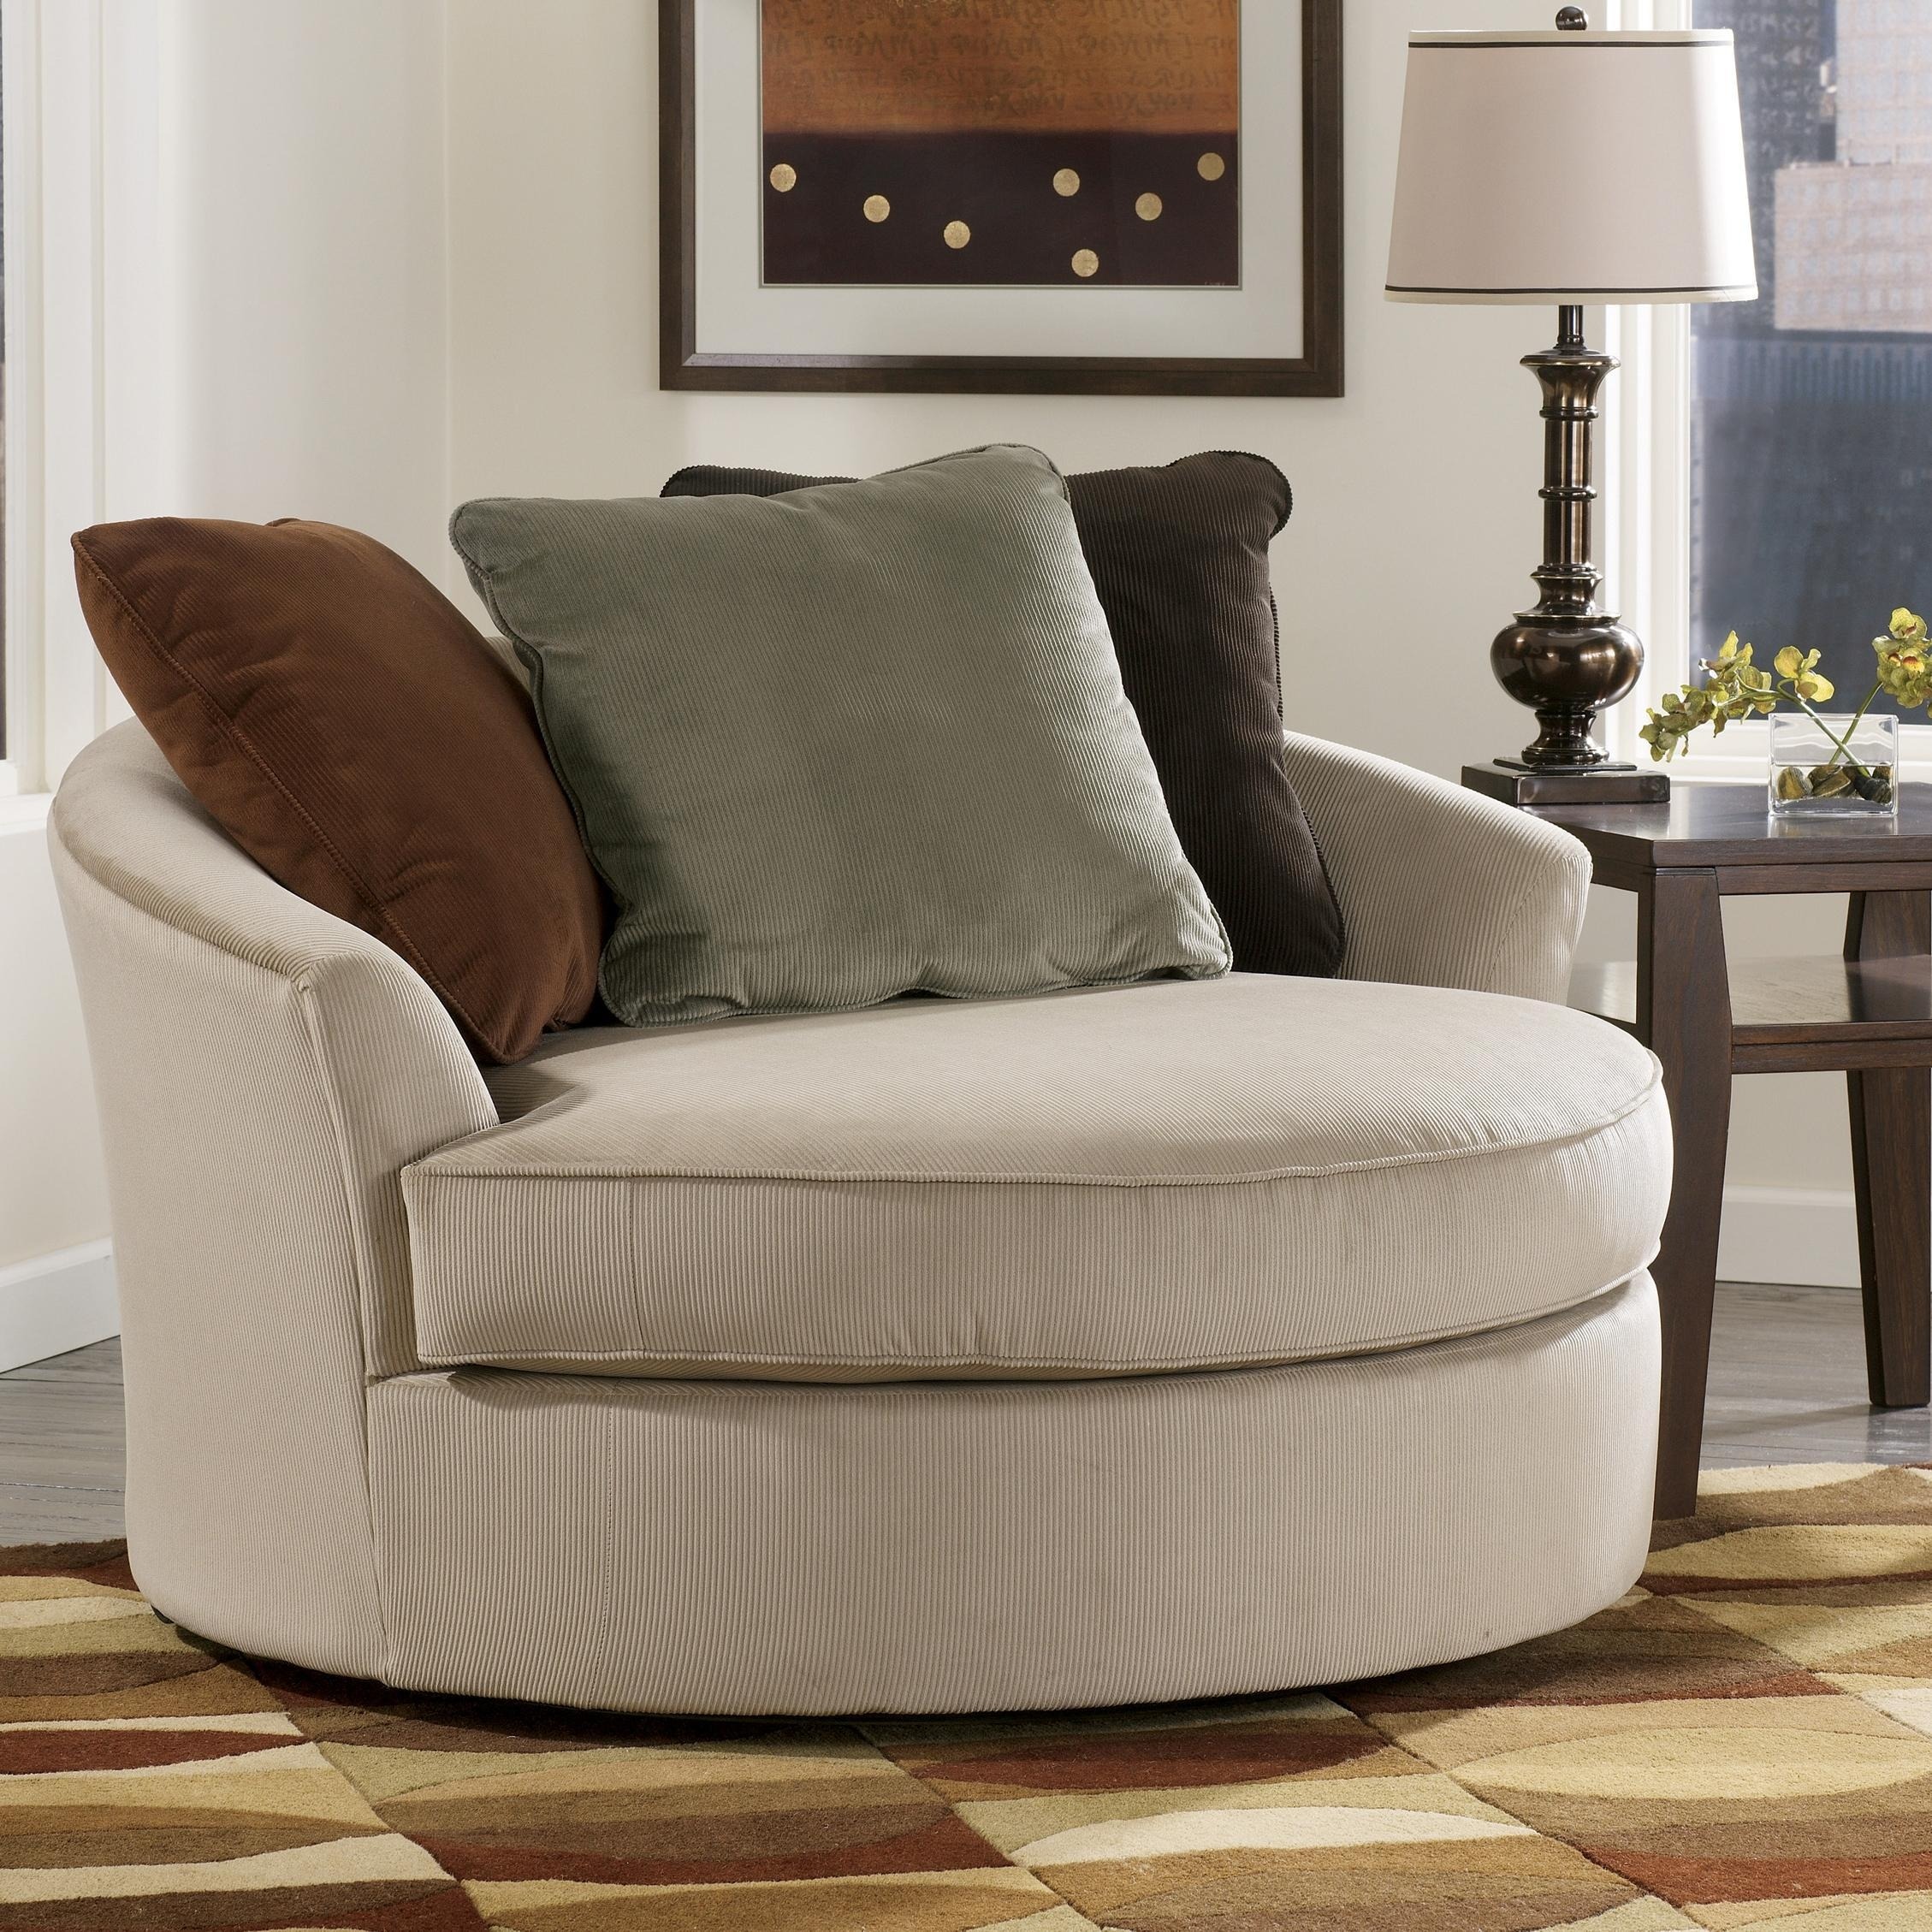 15 ideas of round swivel sofa chairs sofa ideas - Swivel chair living room furniture ...